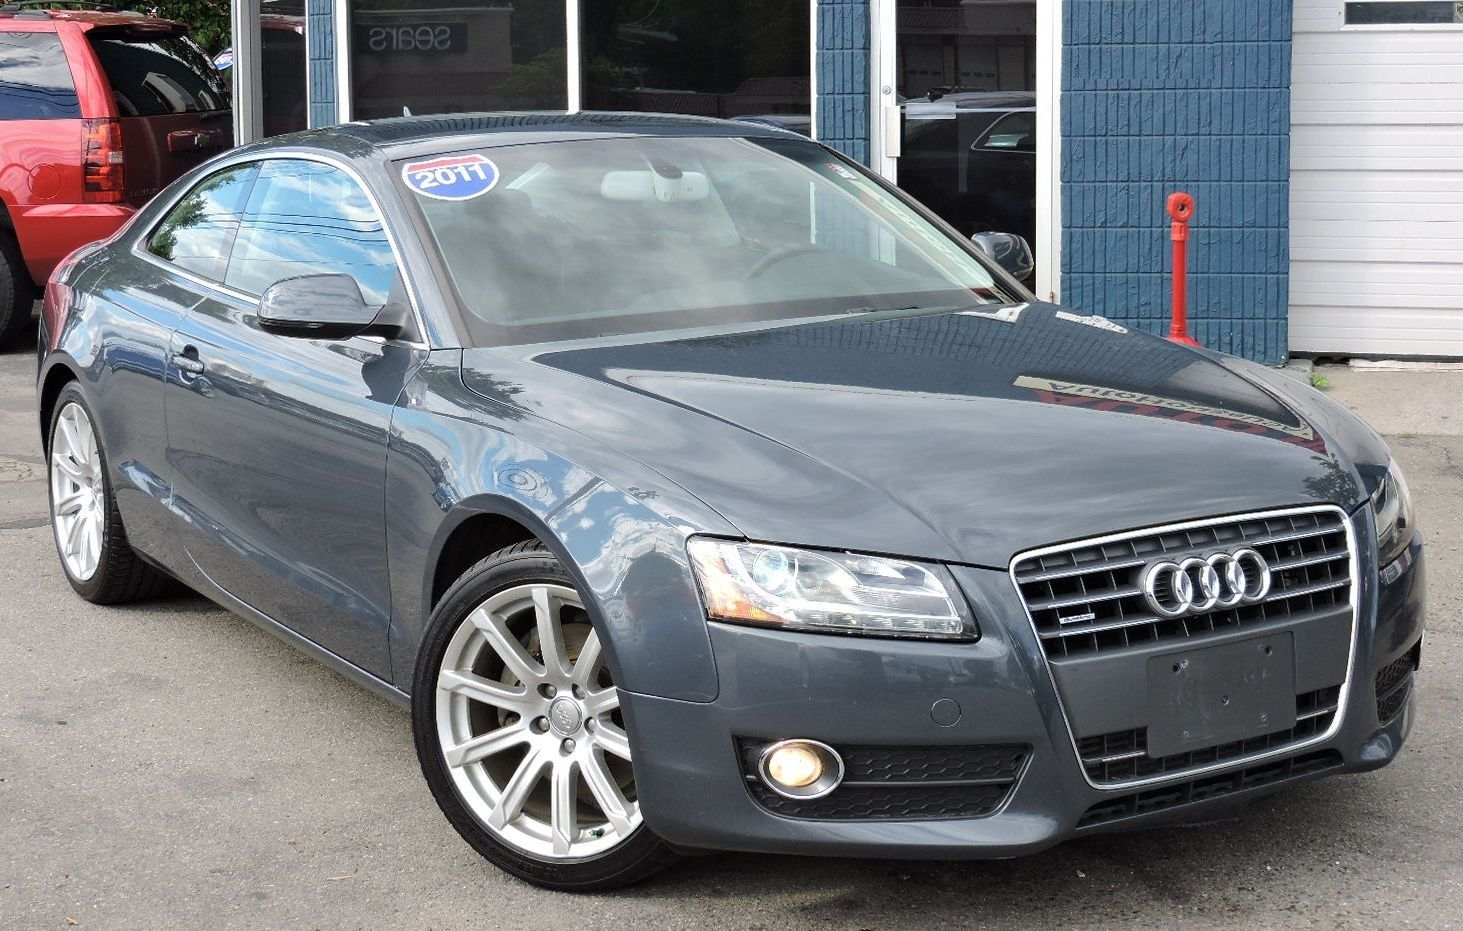 2011 Audi A5 Coupe 2.0T 6 Speed Quattro Premium Plus AWD